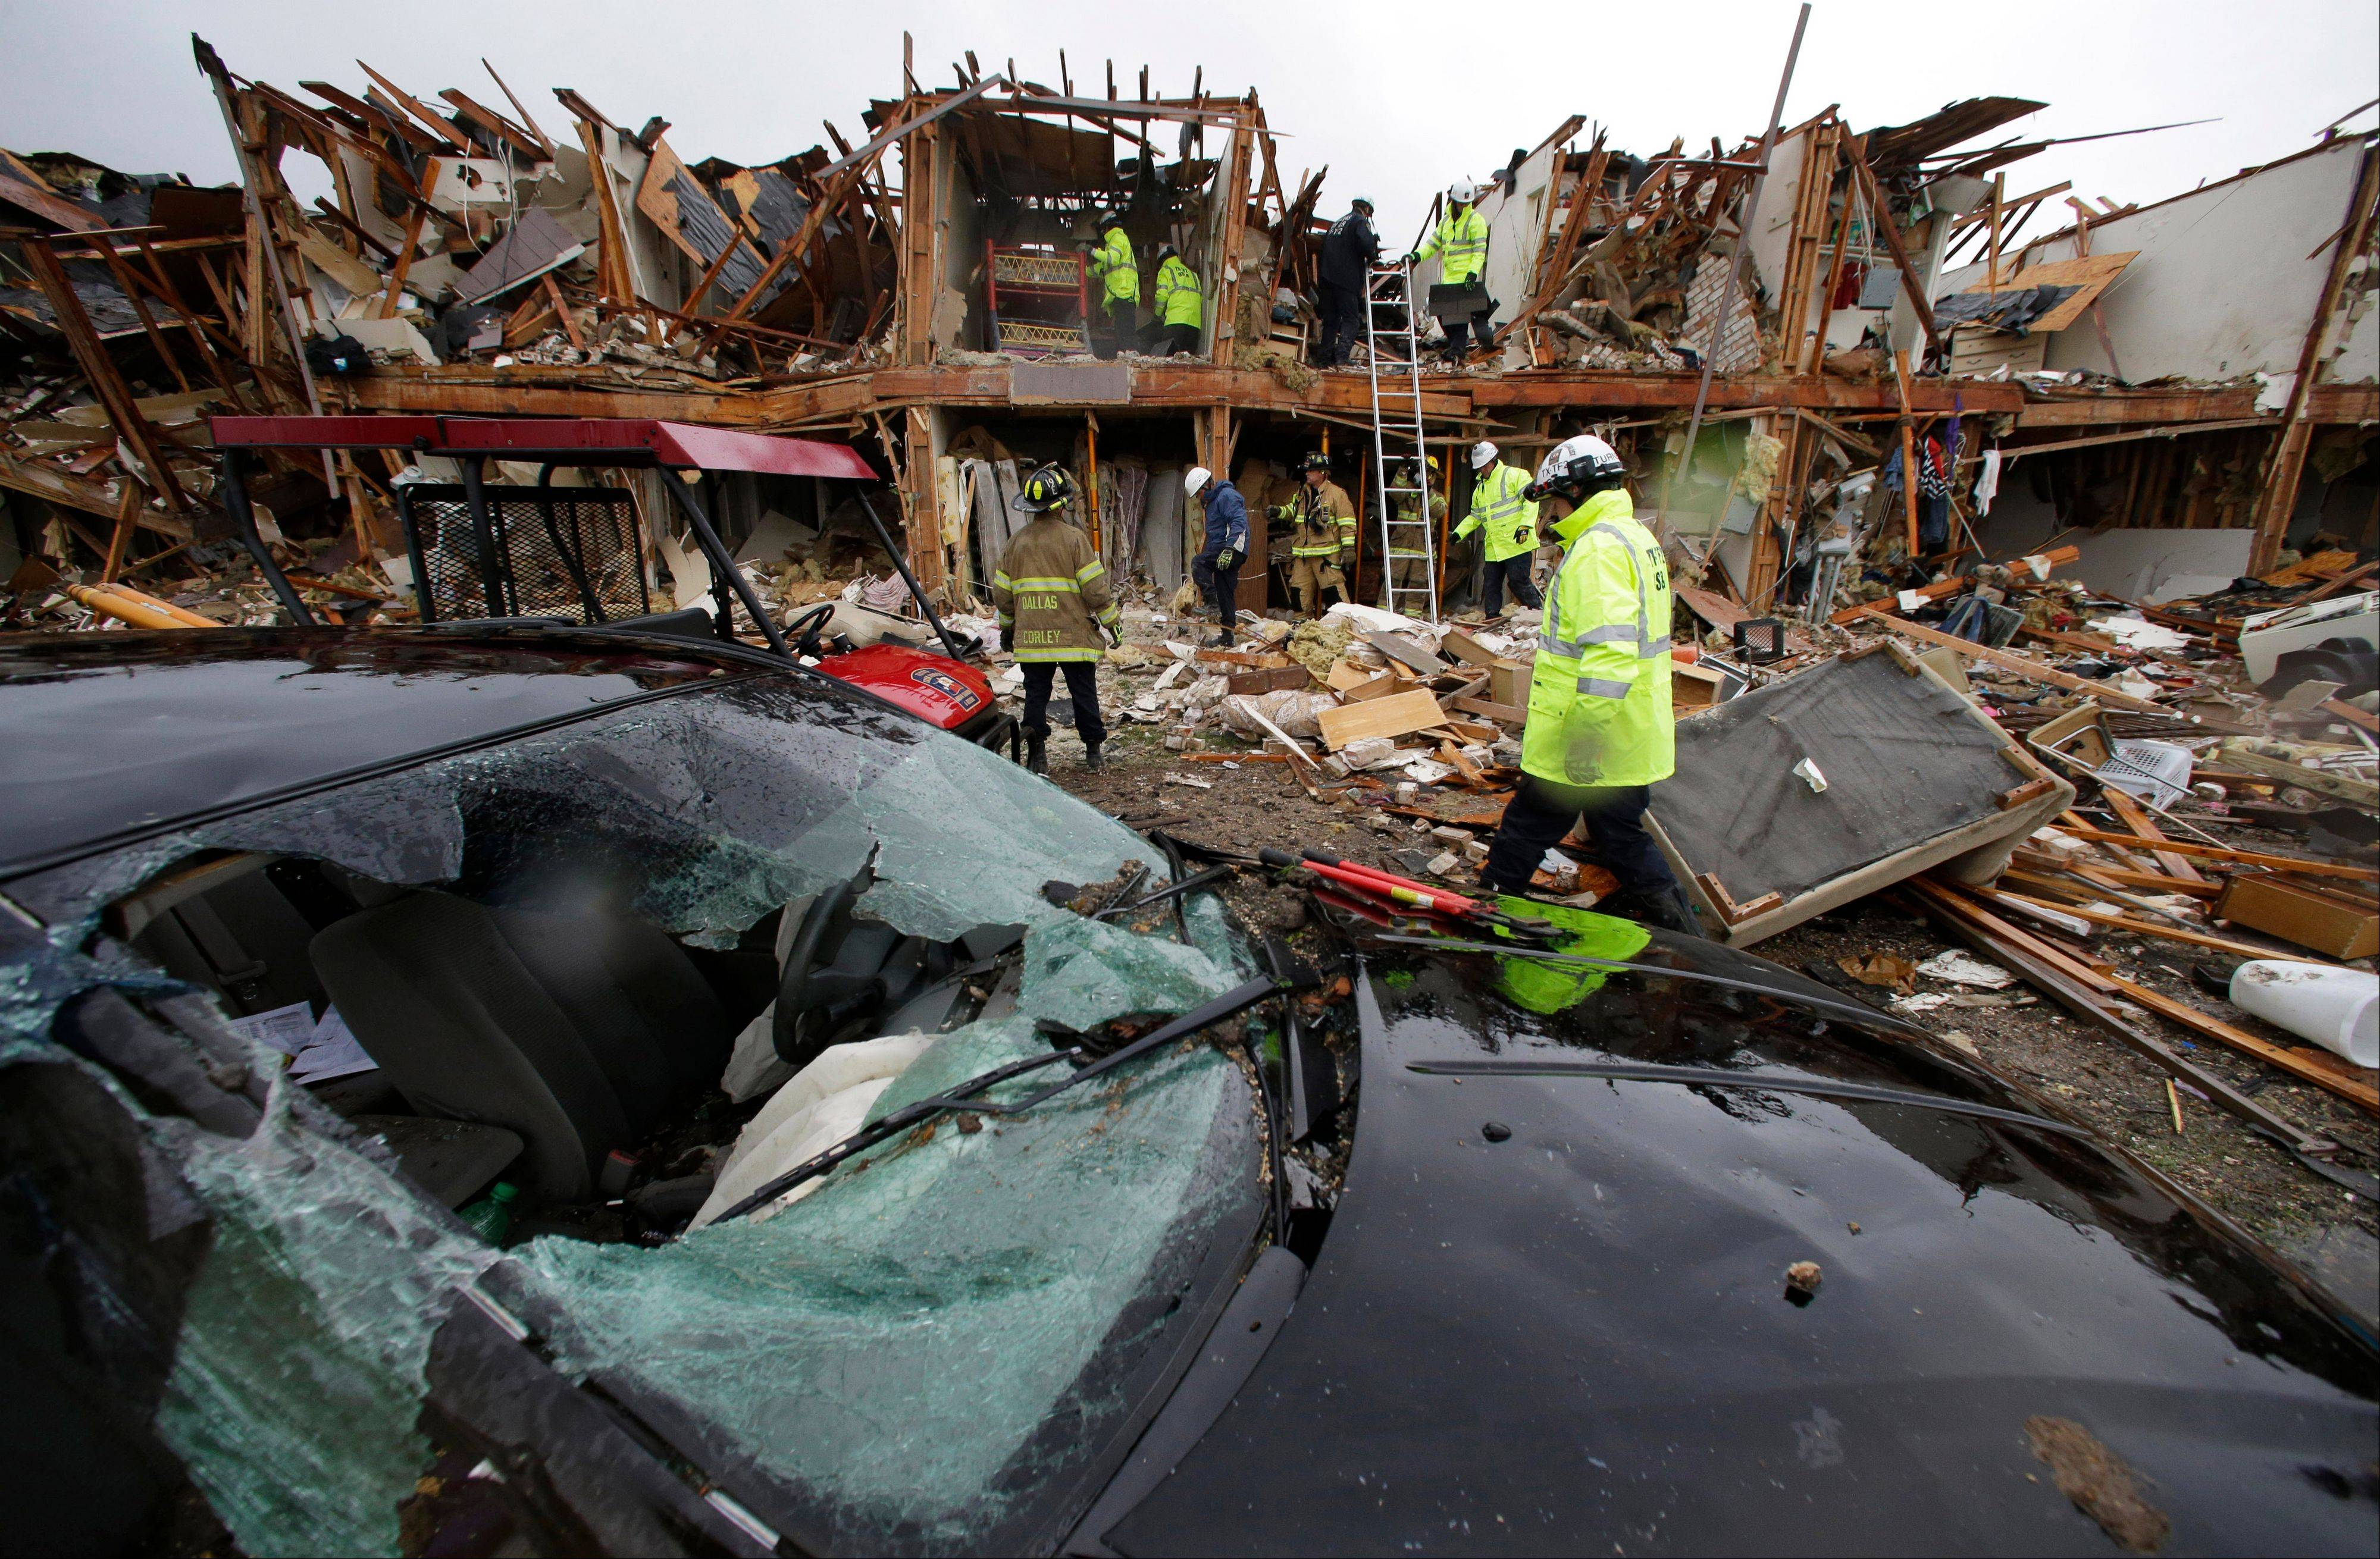 A smashed car sits in front of an apartment complex destroyed by an explosion at a fertilizer plant in West, Texas, as firefighters conduct a search and rescue Thursday. A massive explosion at the West Fertilizer Co. Wednesday night killed as many as 15 people and injured more than 160, officials said overnight.